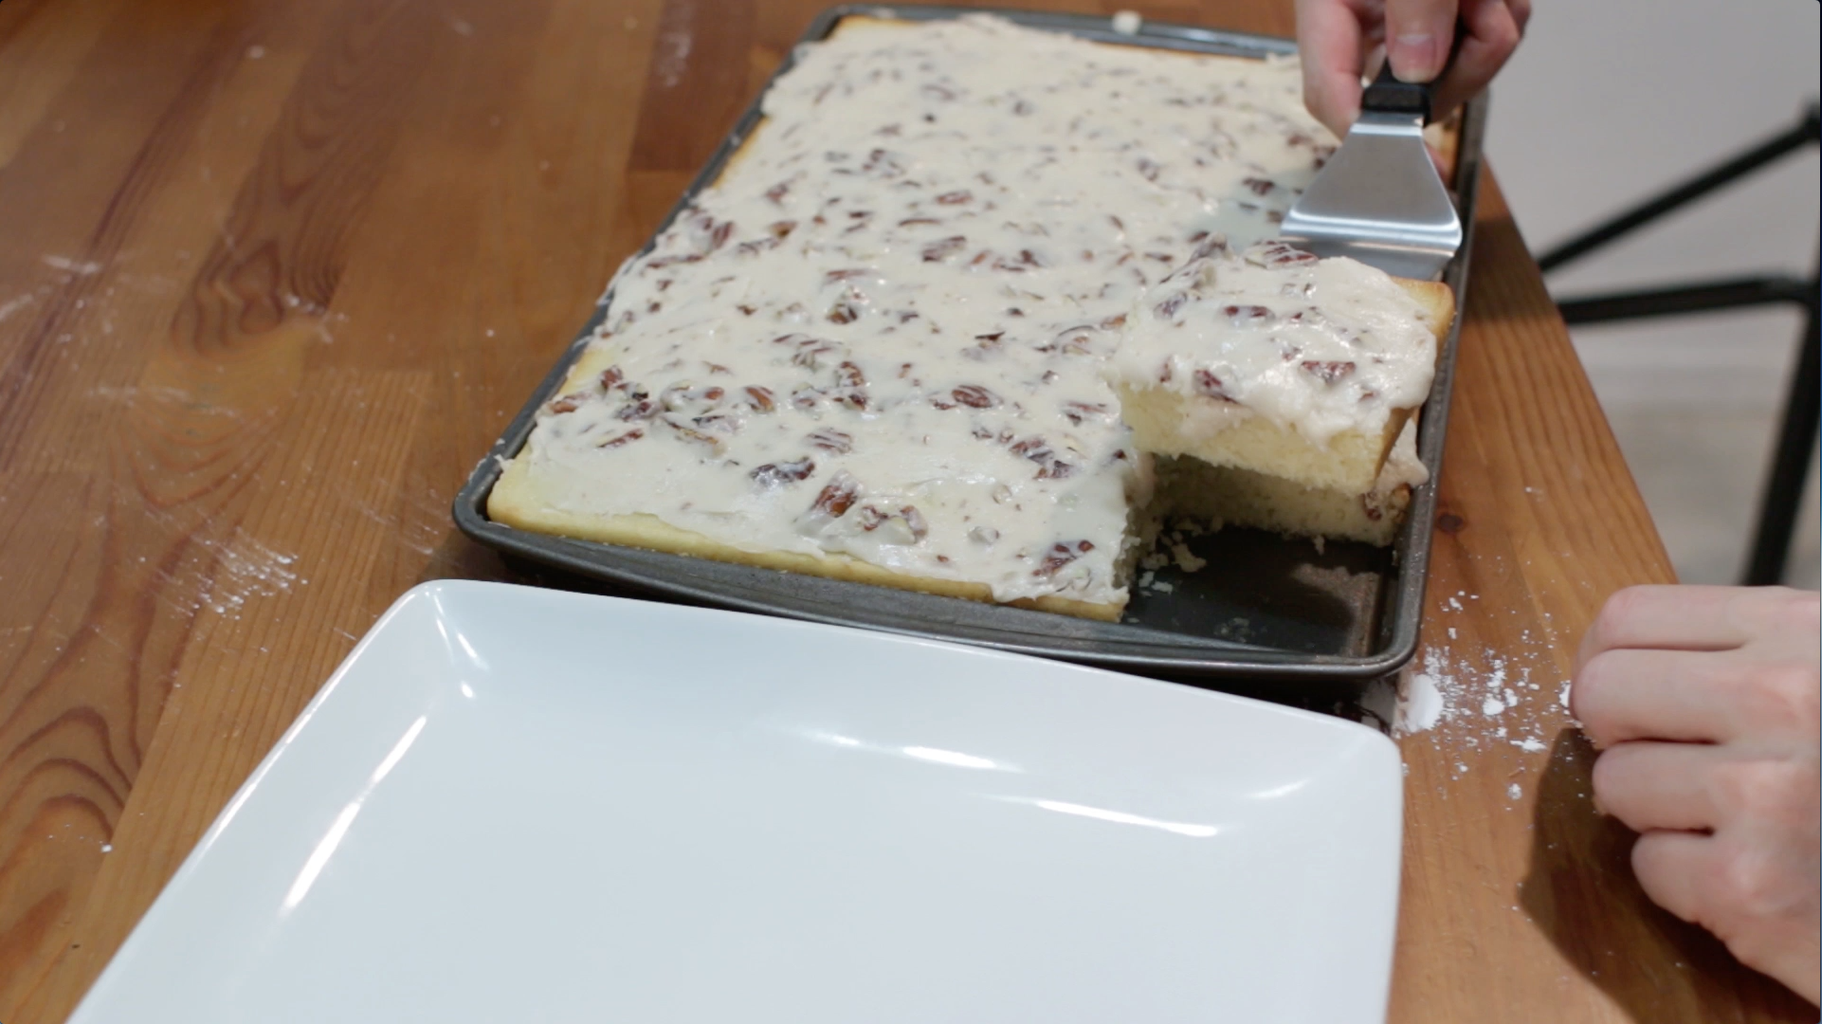 Frost That Cake and Serve It Up!